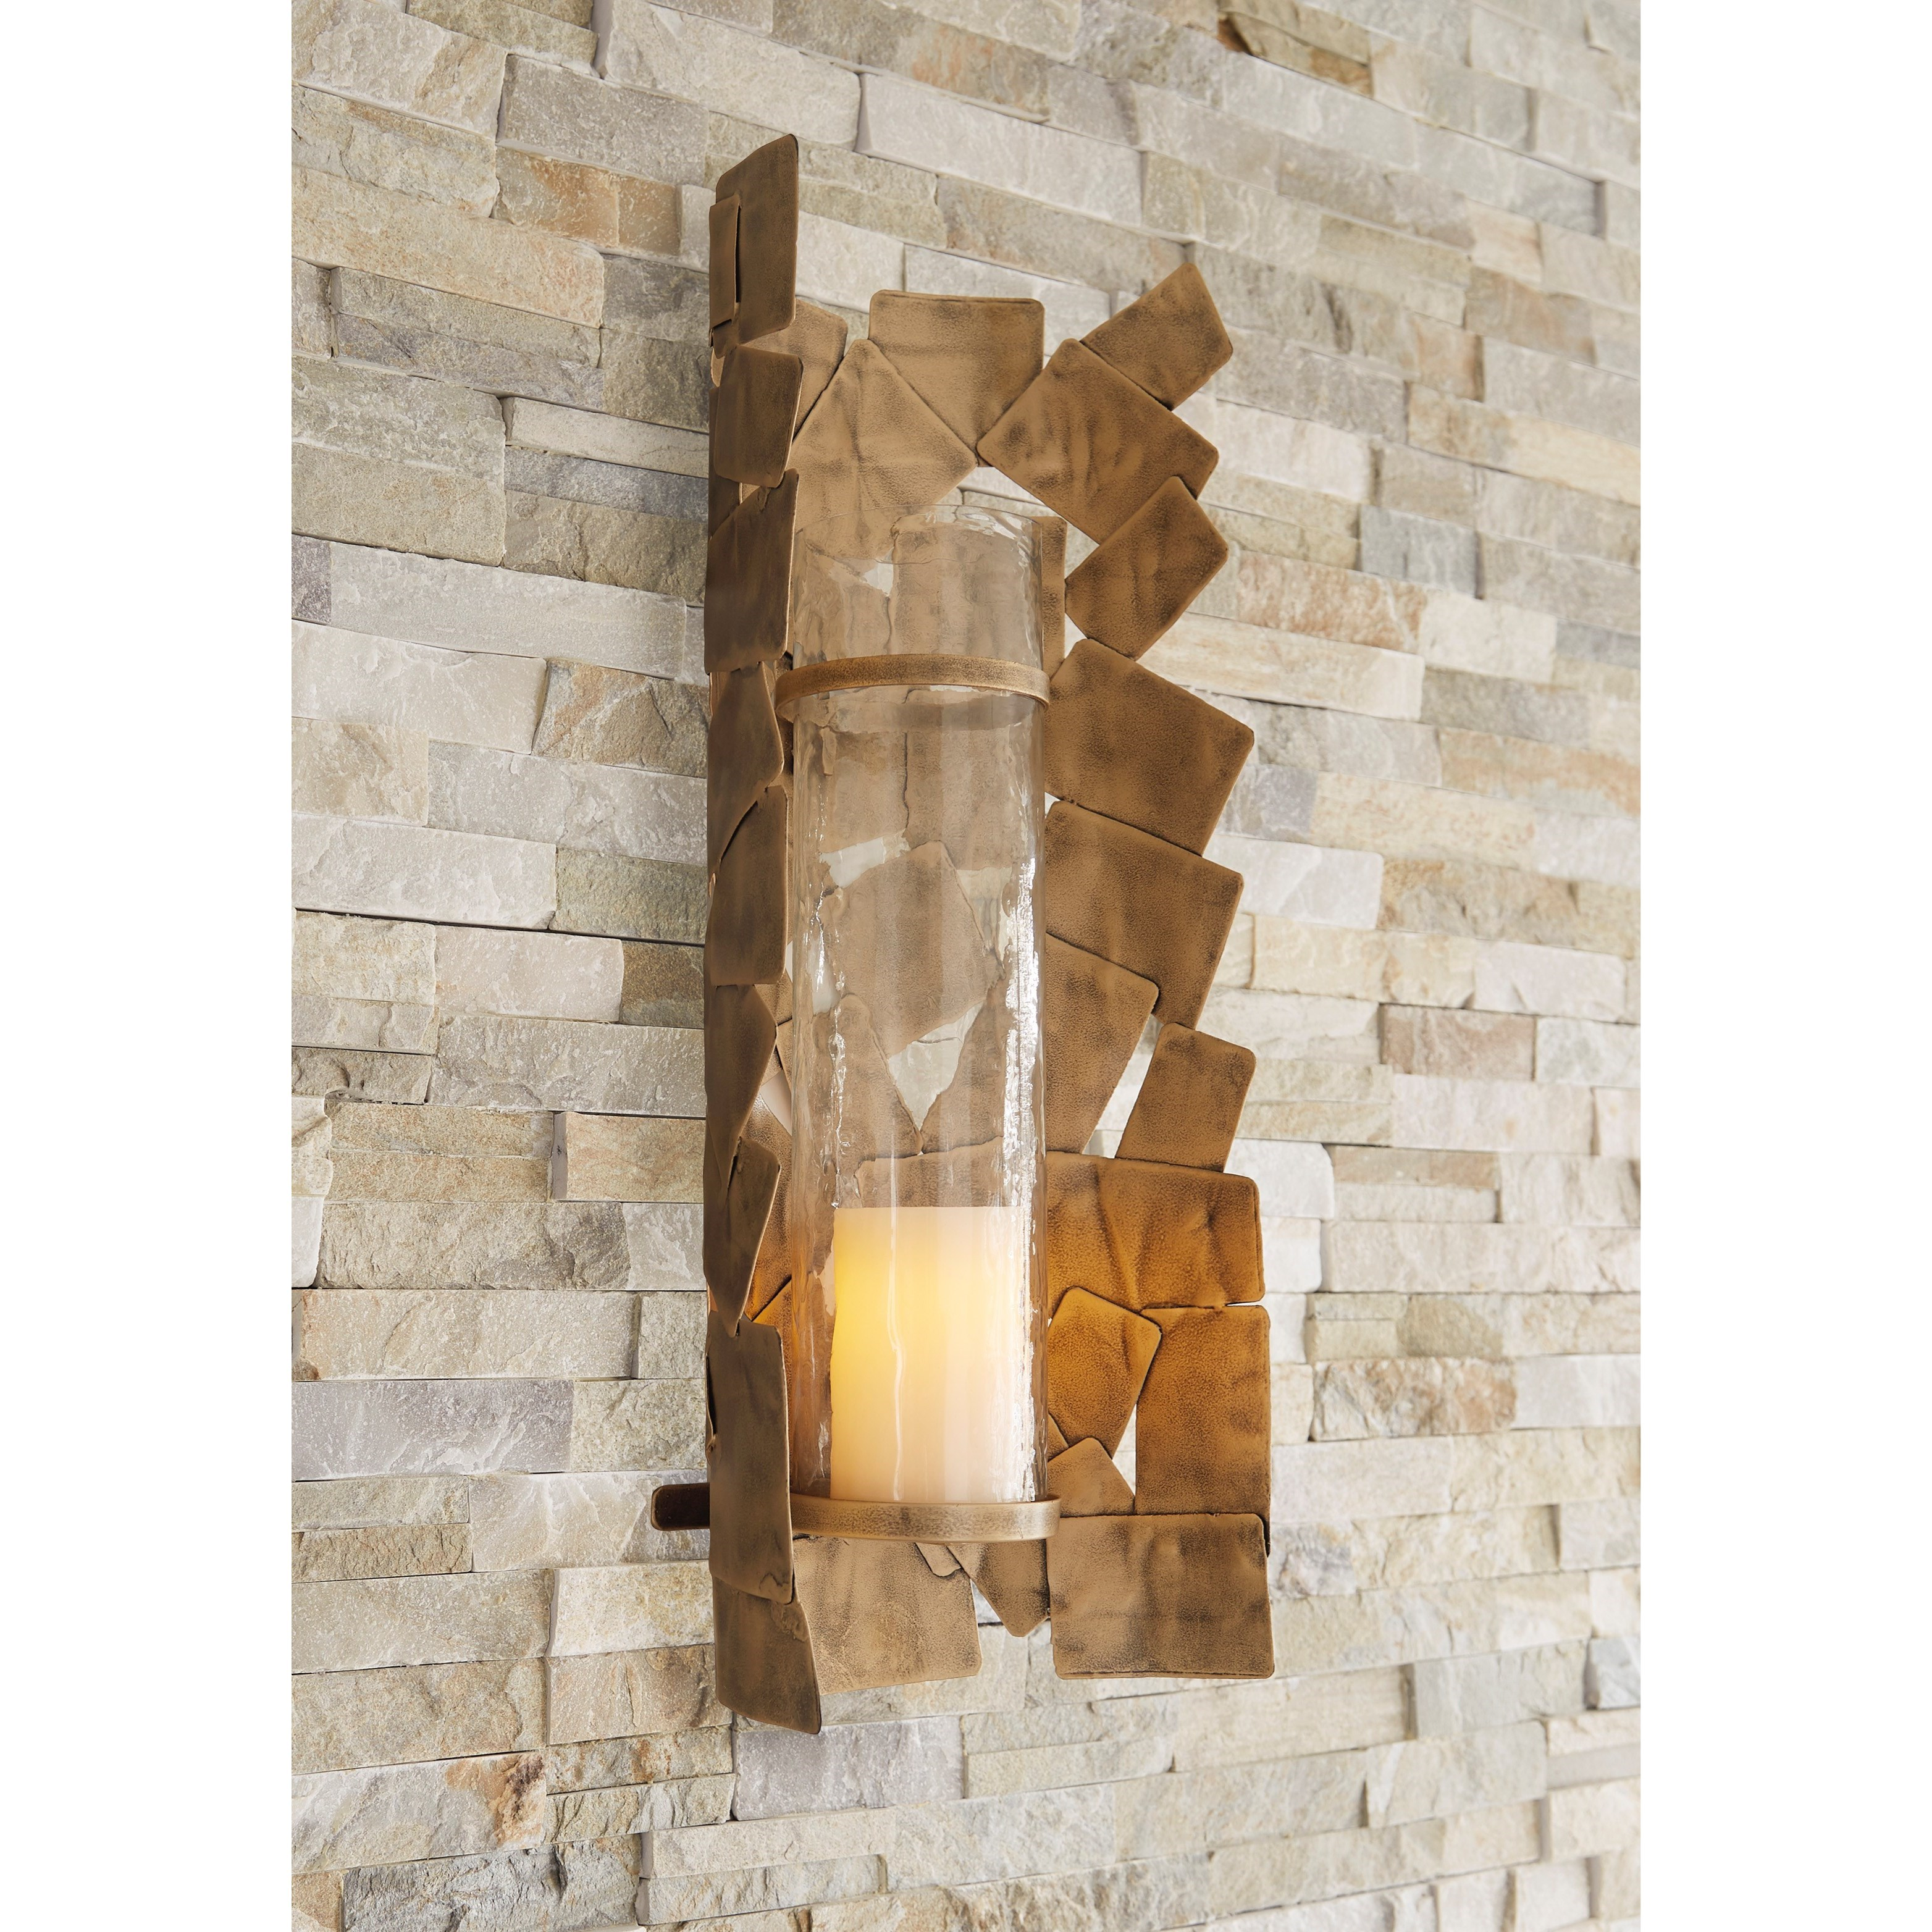 Wall Art Jailene Antique Gold Wall Sconce by Signature Design by Ashley at Sparks HomeStore